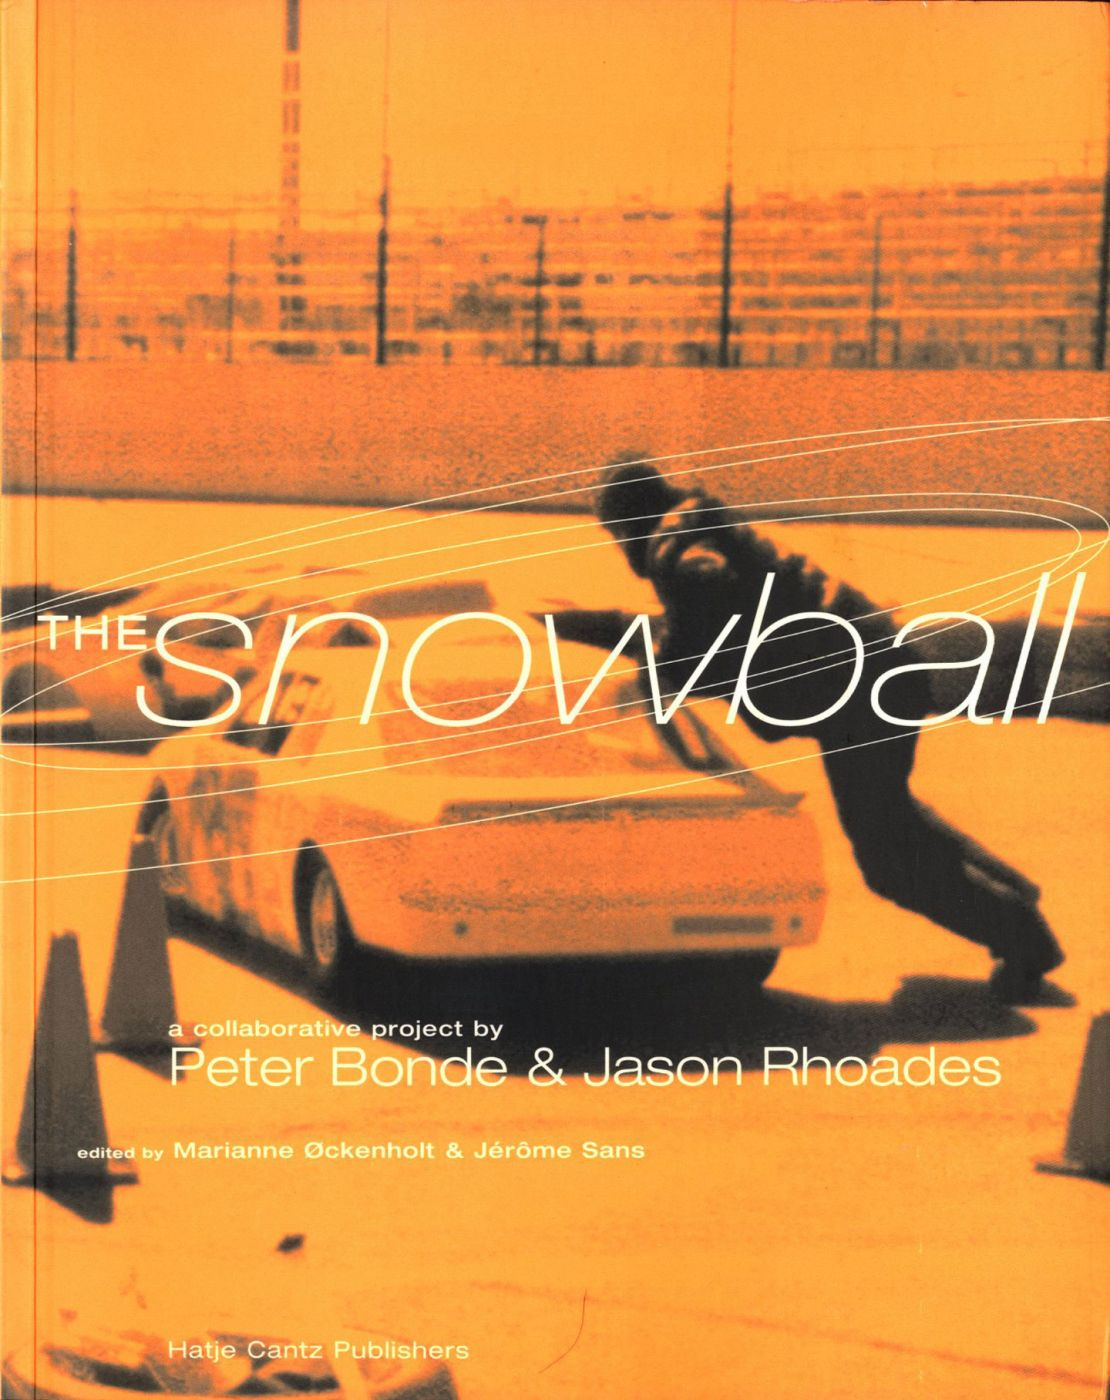 The Snowball: a collaborative project by Peter Bonde & Jason Rhoades